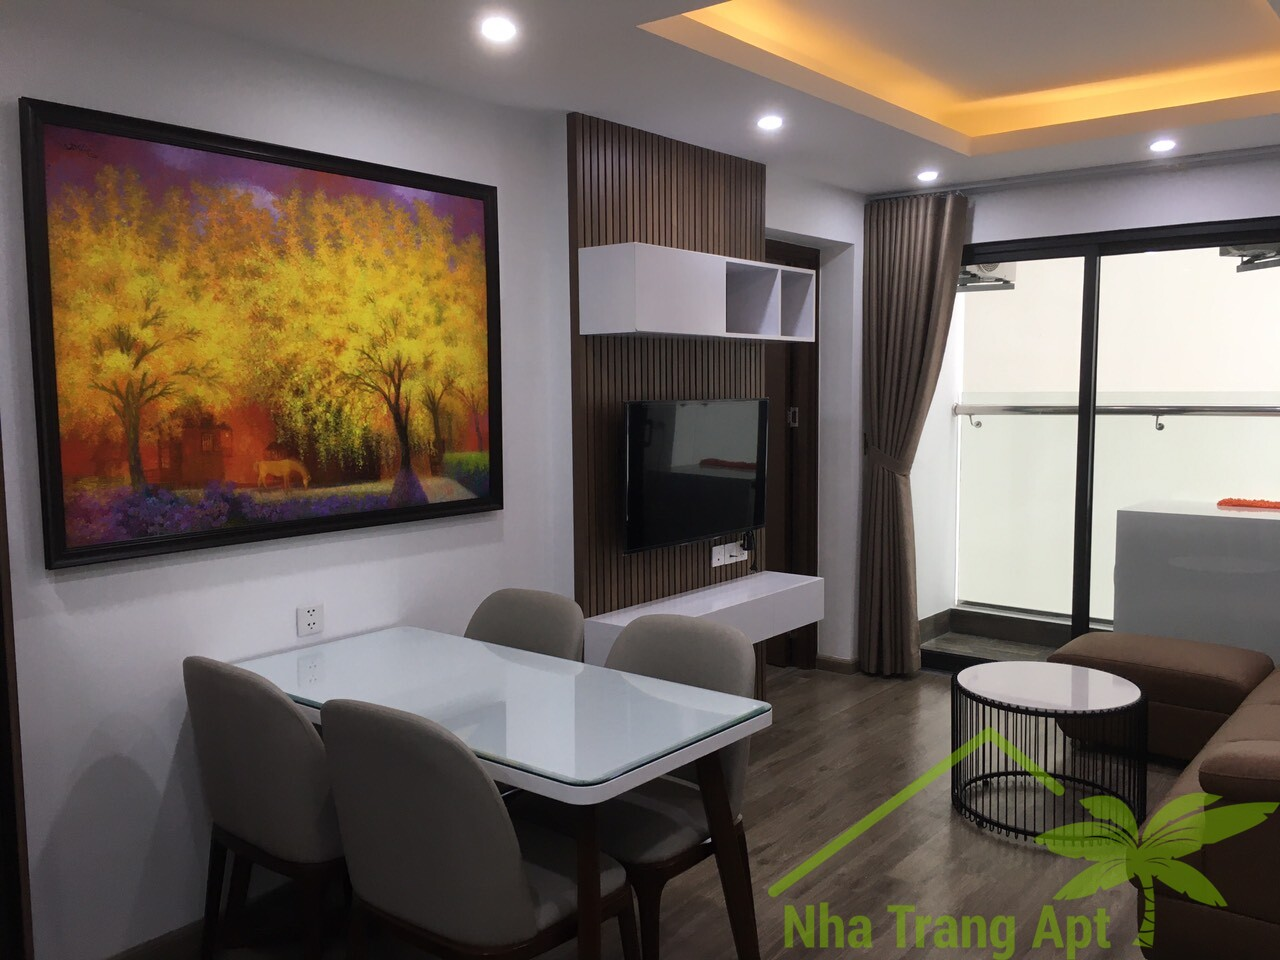 2 br apartment for rent in Hud building Nha Trang A612